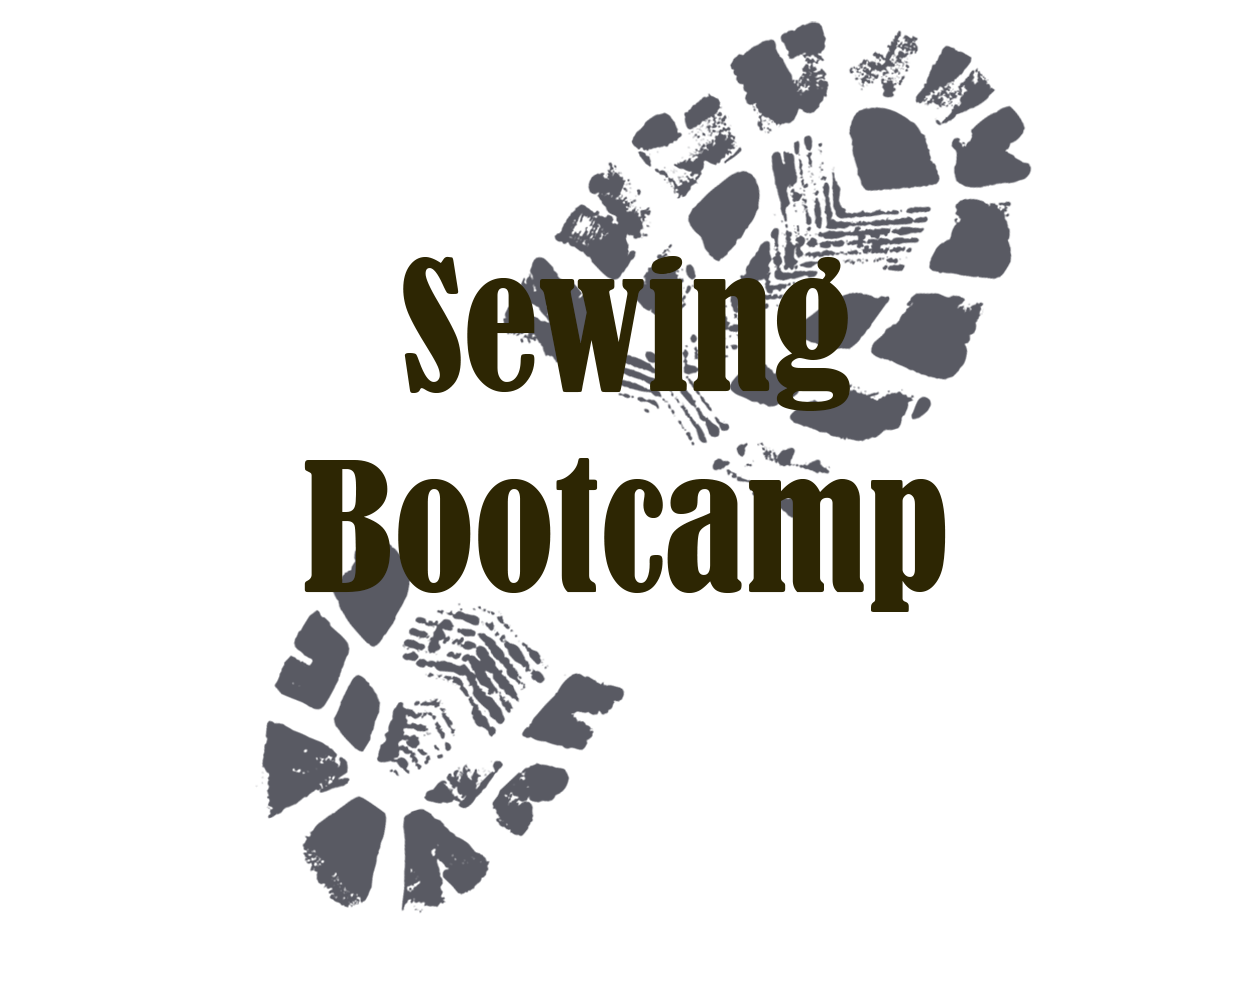 Sewing Bootcamp